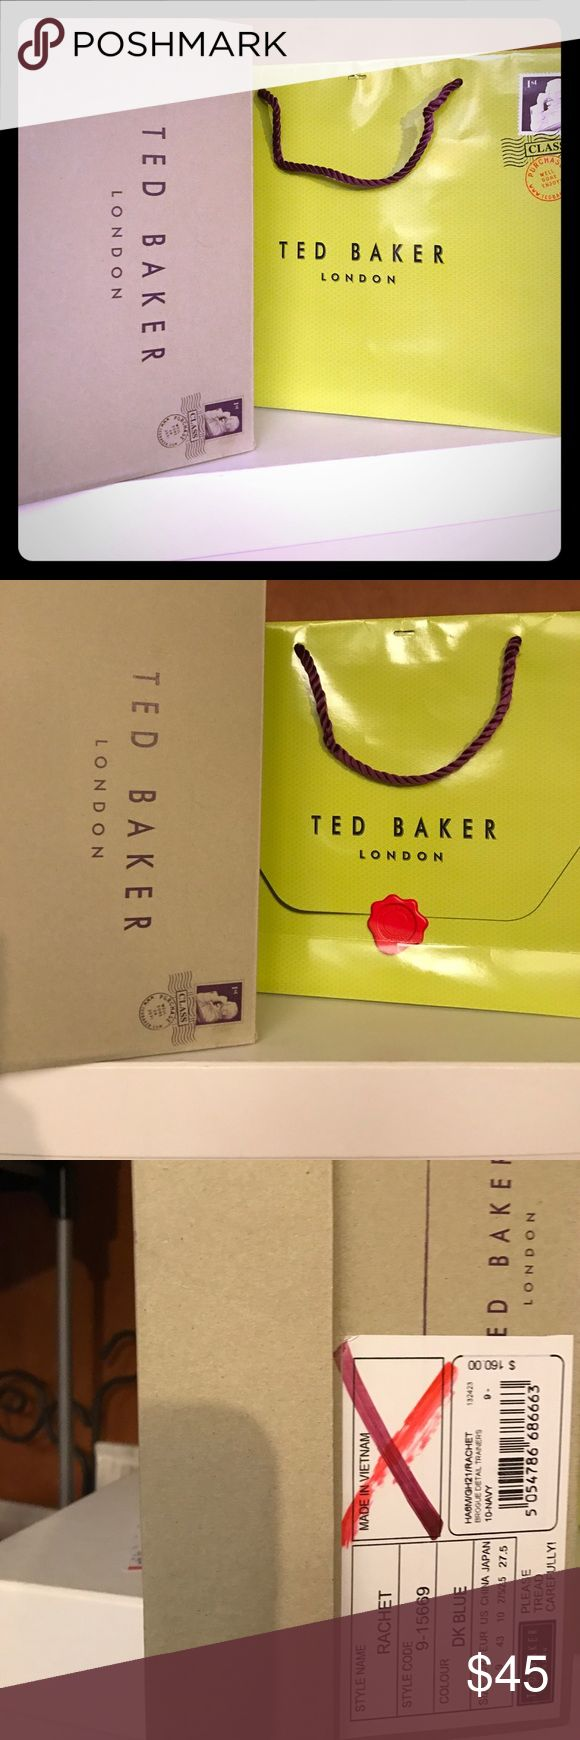 Ted Baker London  Shoe Box and Shopping Bag Excellent Condition - Ted Baker London Shoes